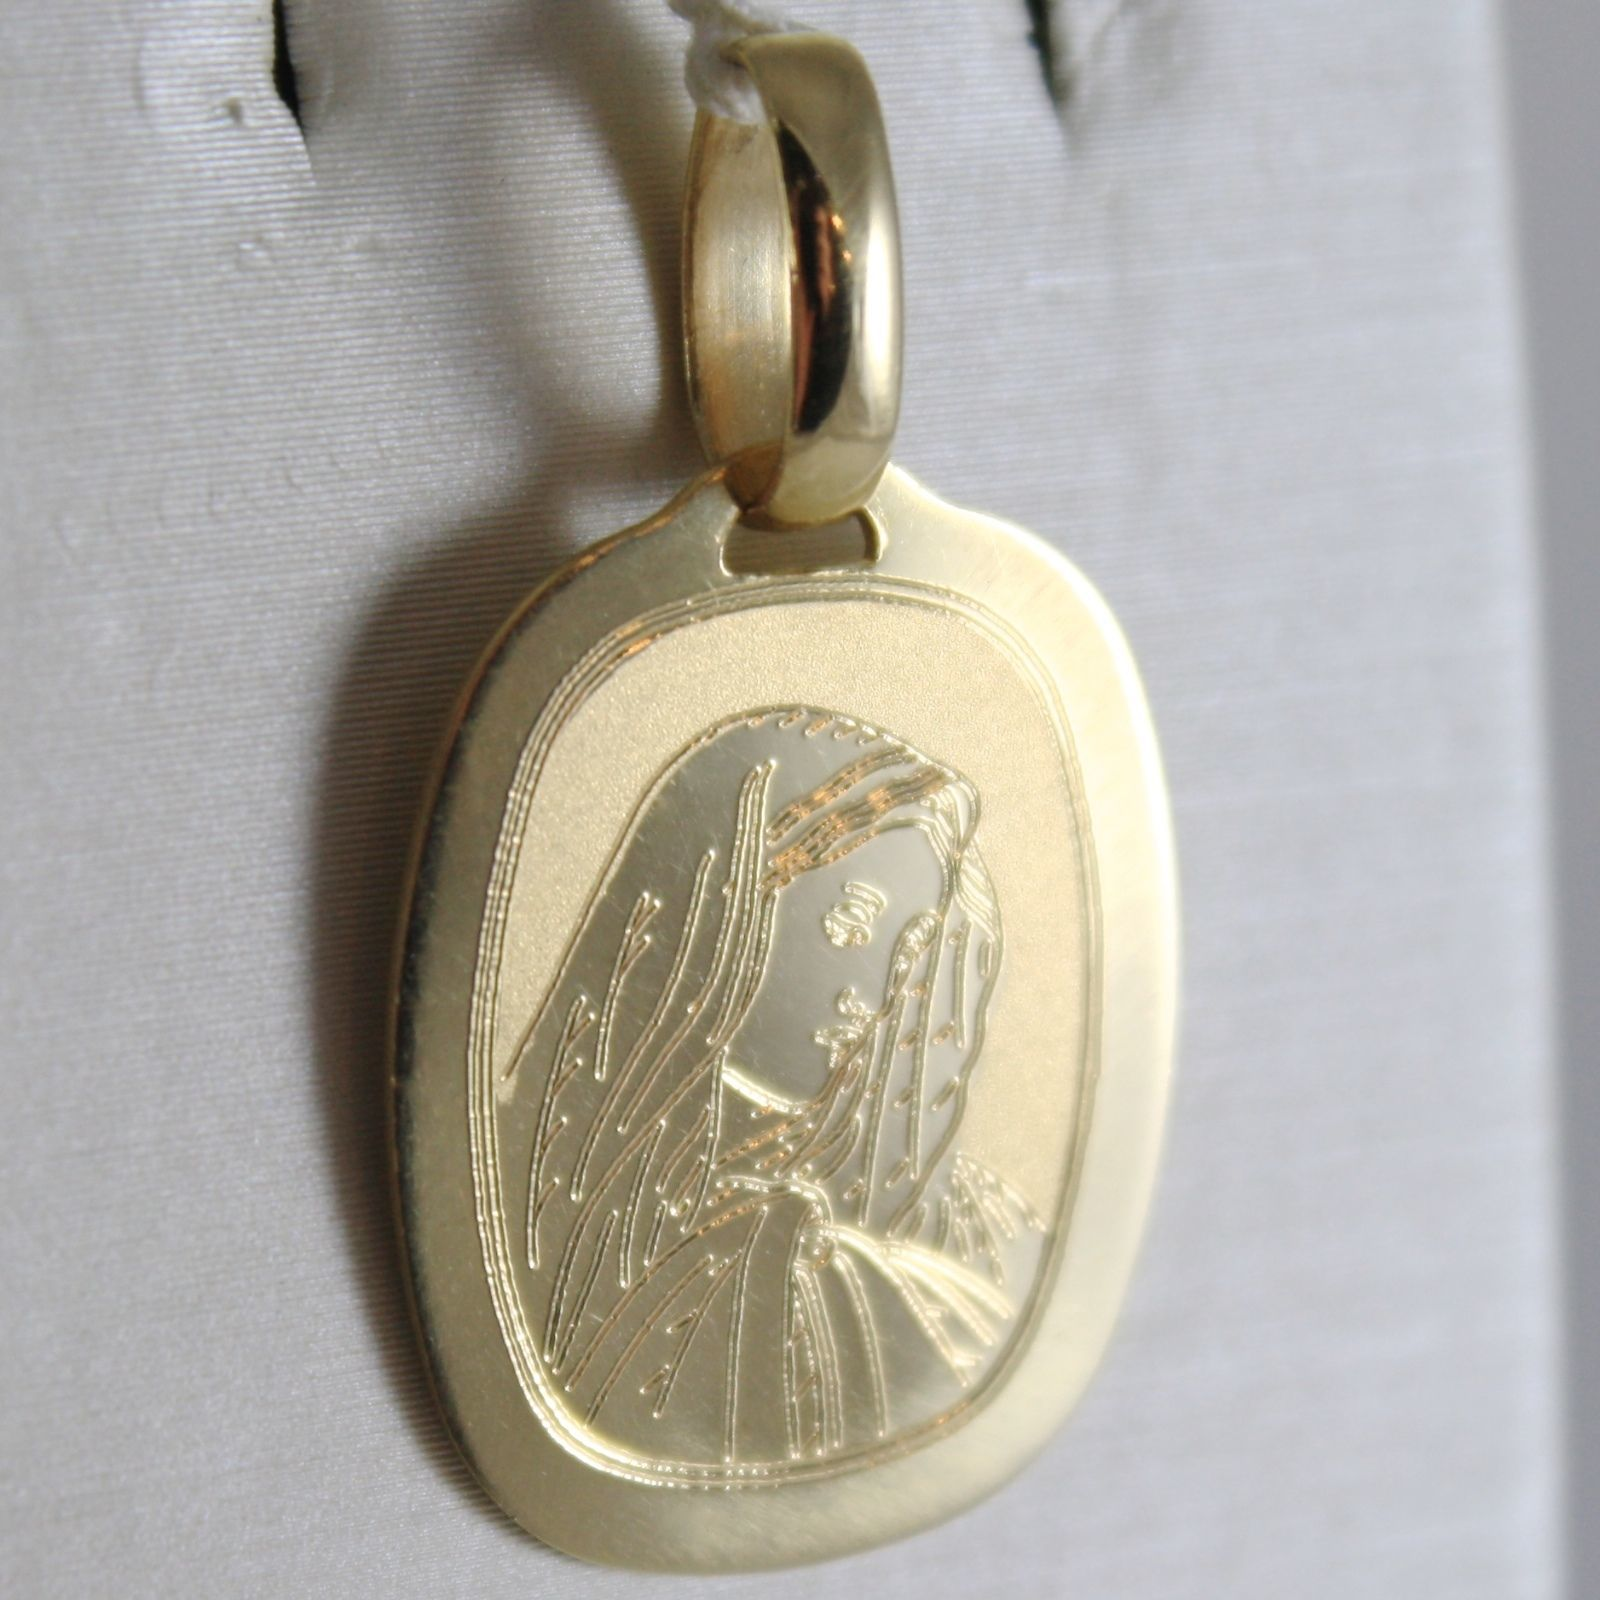 PENDENTIF MÉDAILLE OR JAUNE 750 18K, MADONE, MARIE, ENGRAVABLE,, MADE IN ITALY